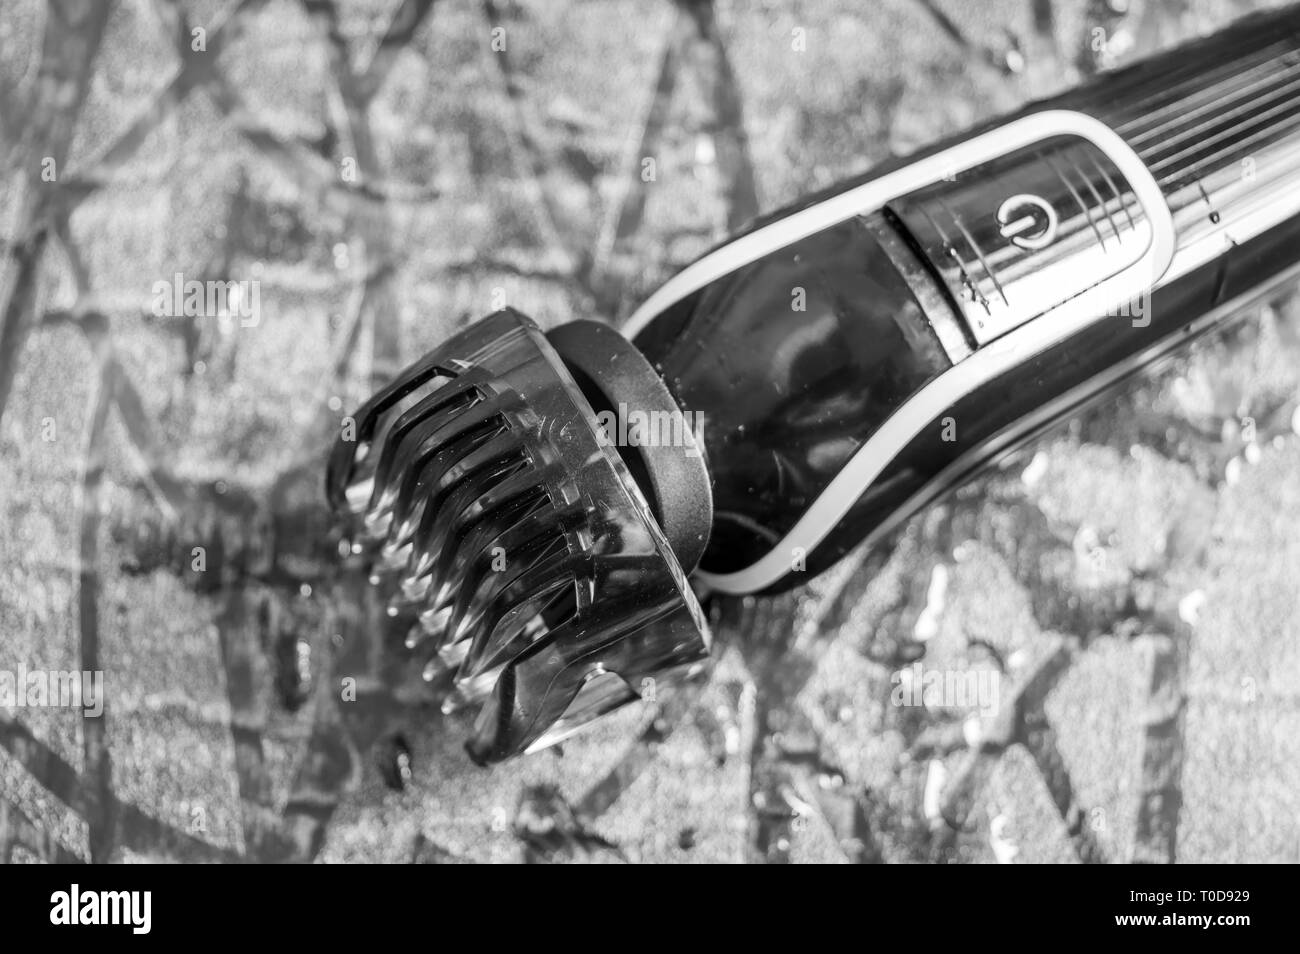 Man's electric shaving machine or trimmer with a blade adjustment comb kept on a wet floor - Stock Image